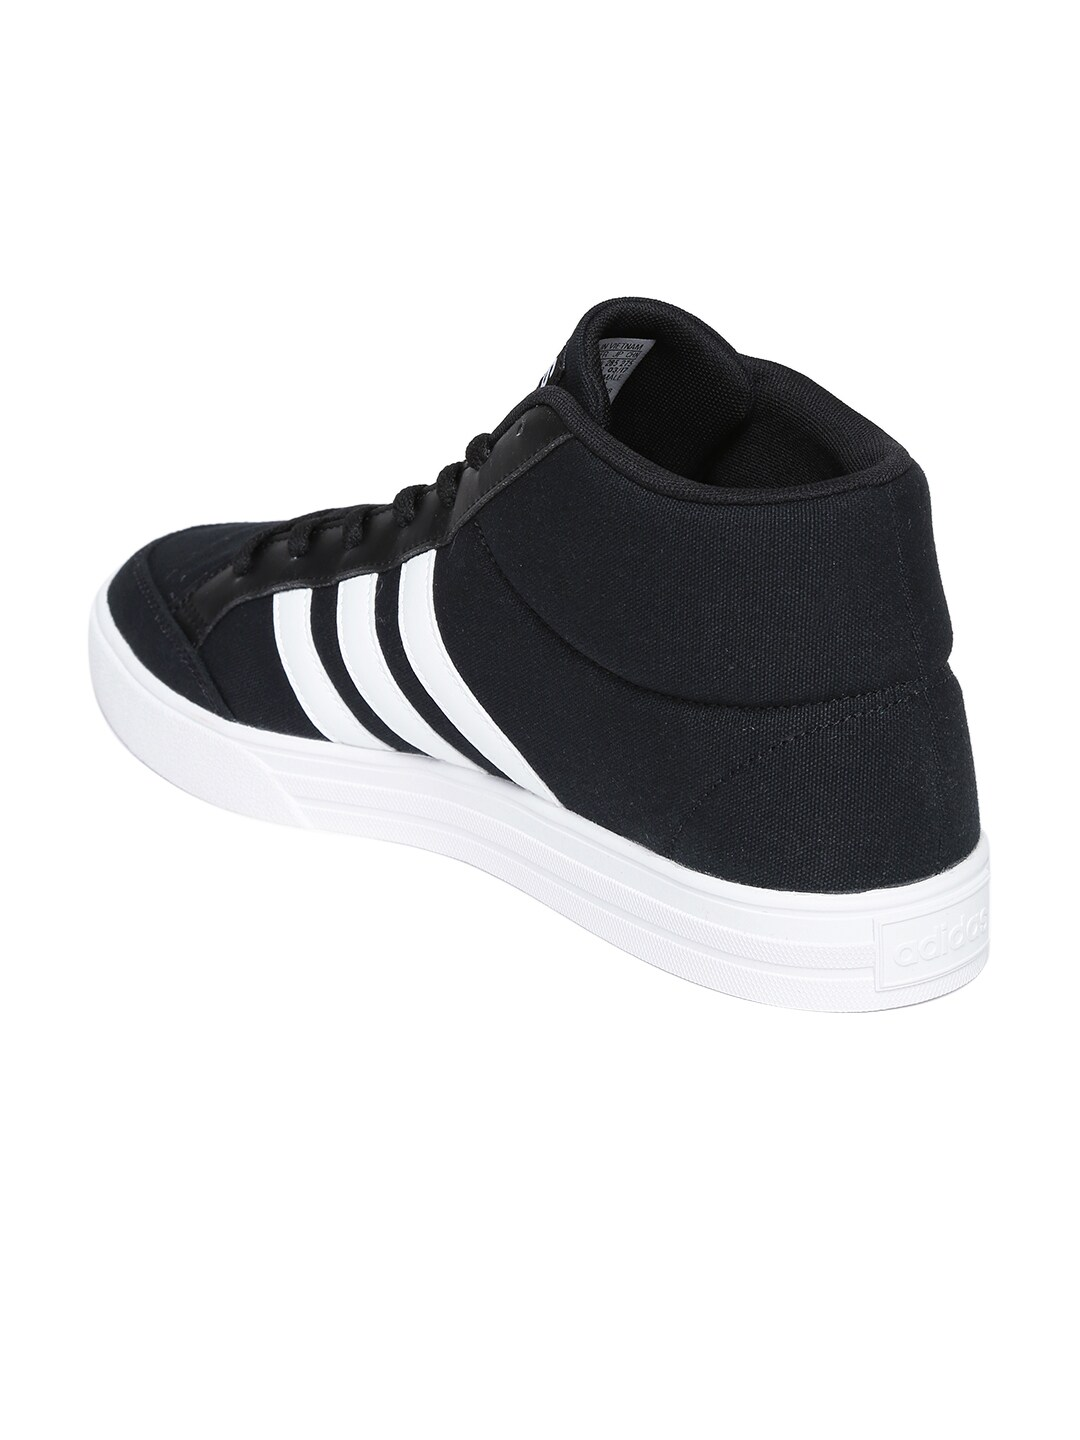 adidas shoes black and white low top. adidas shoes black and white low top